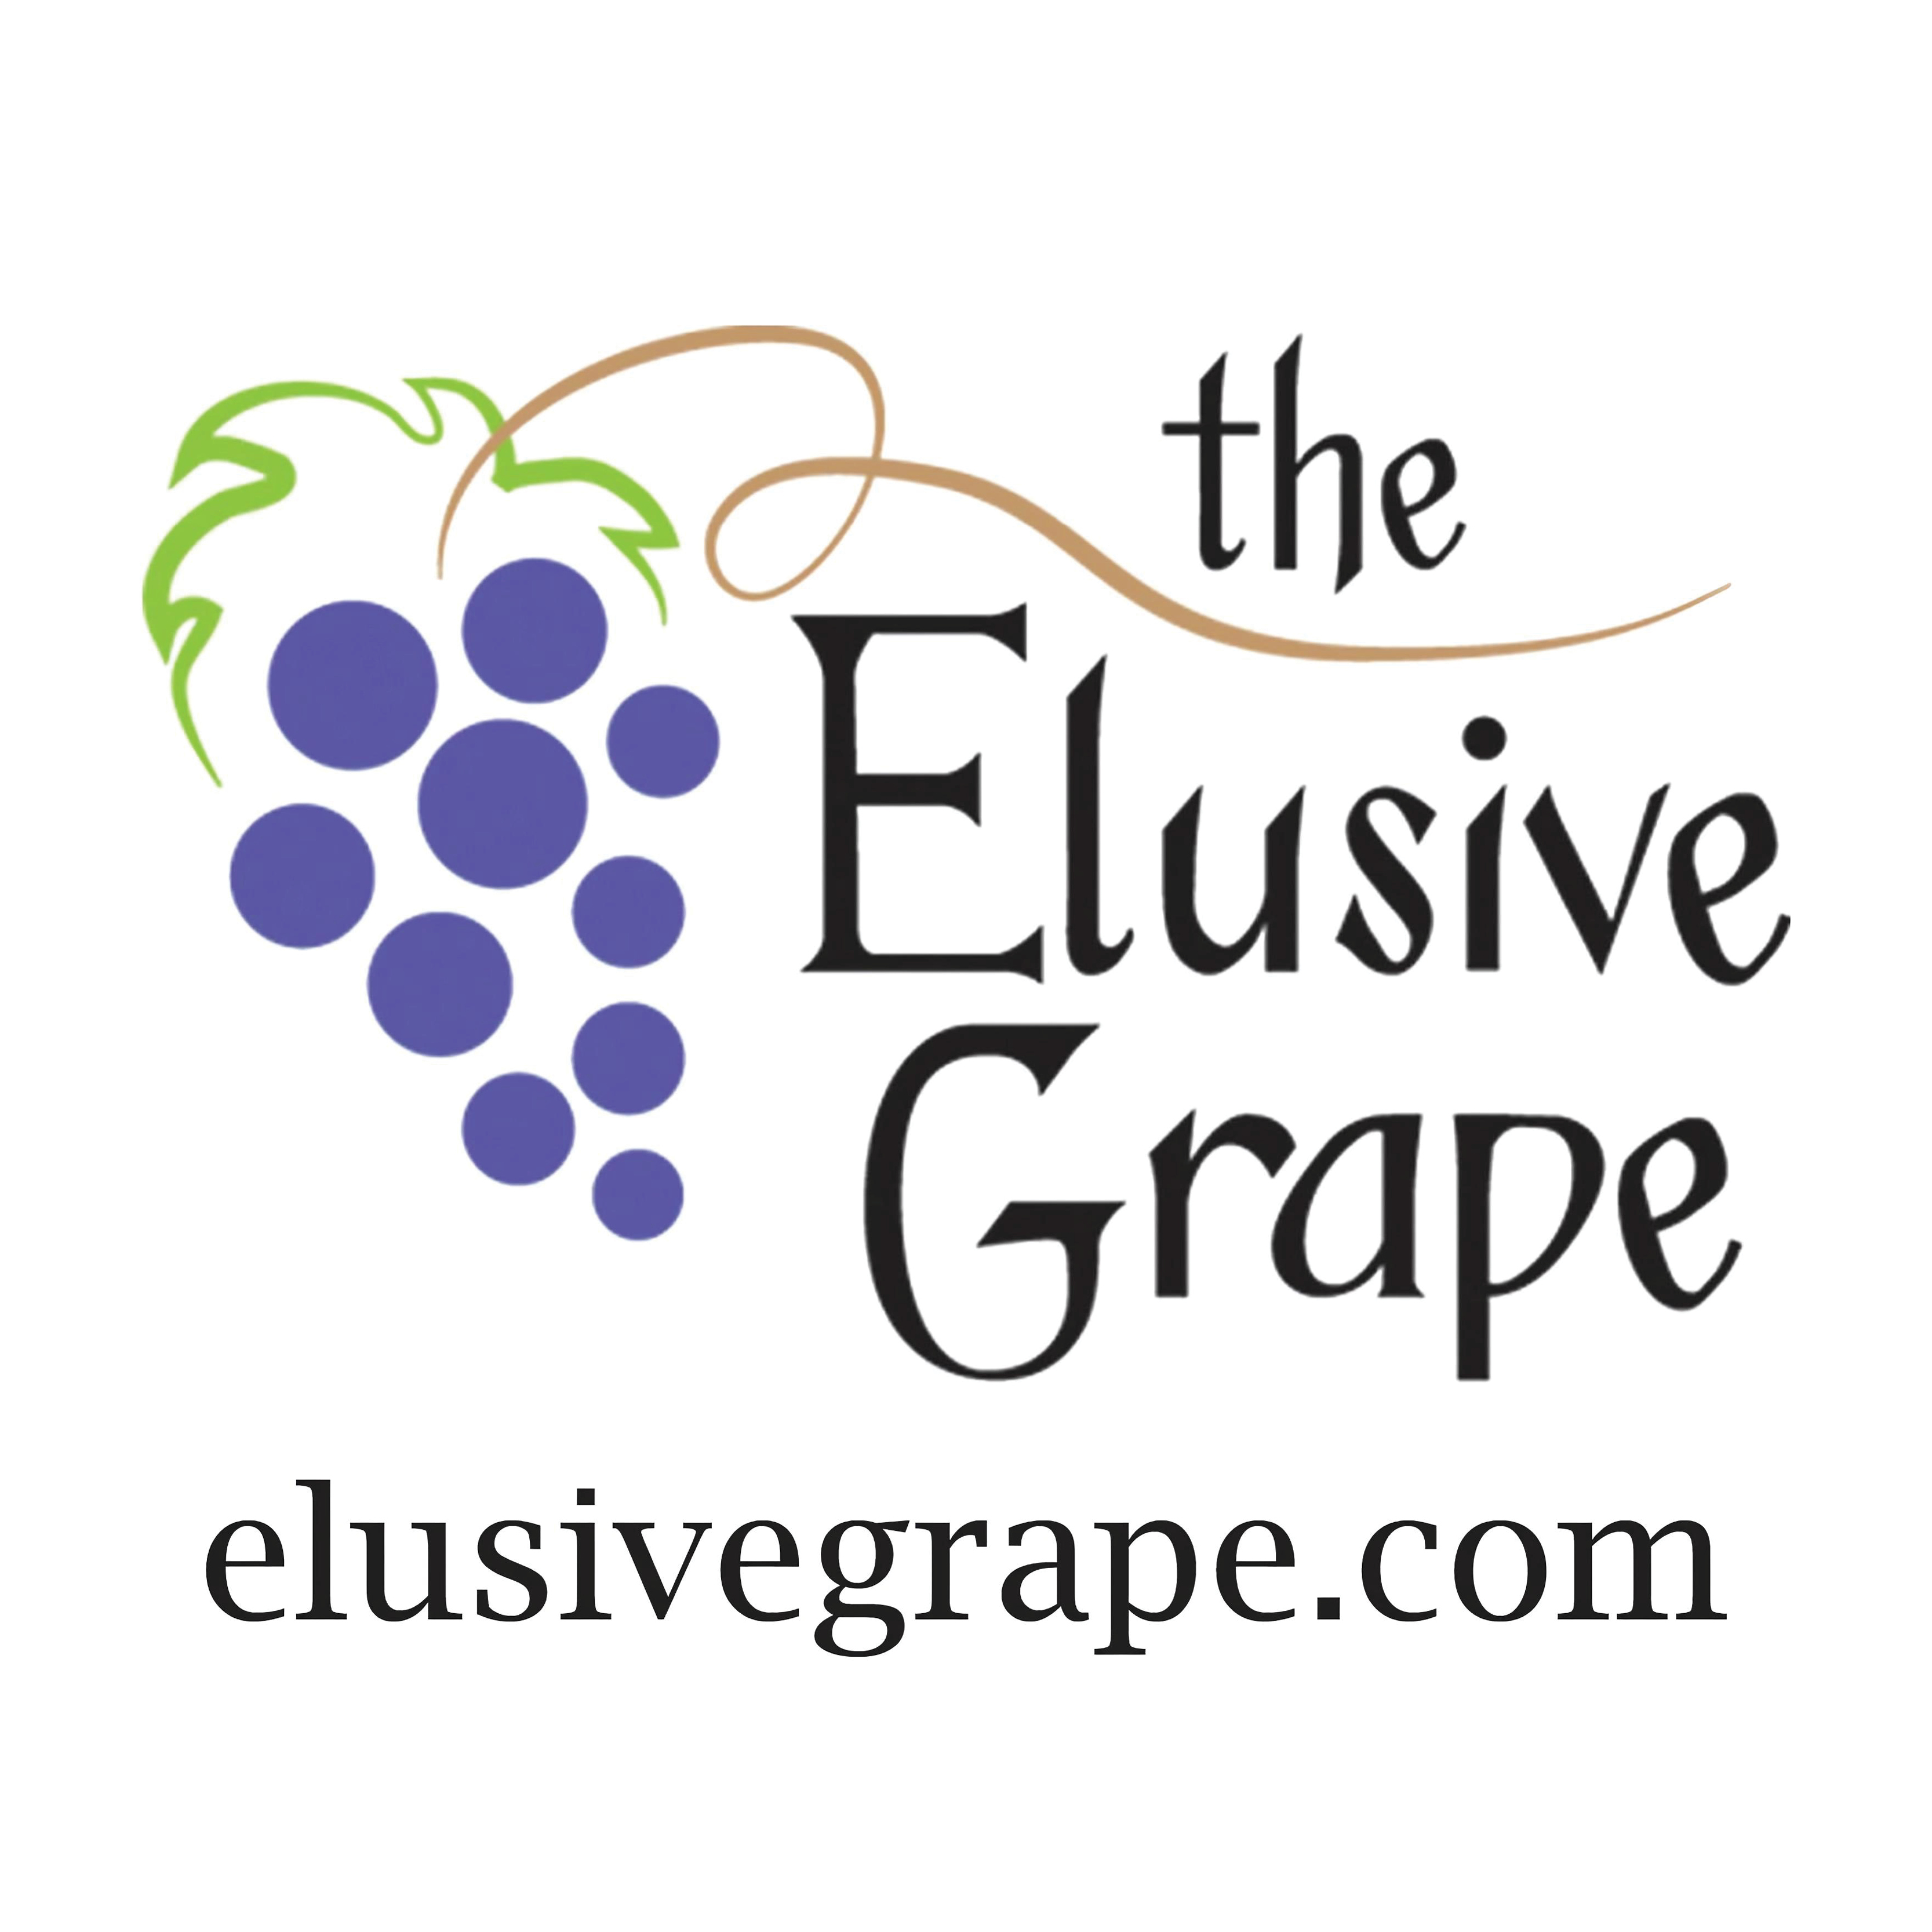 The Elusive Grape